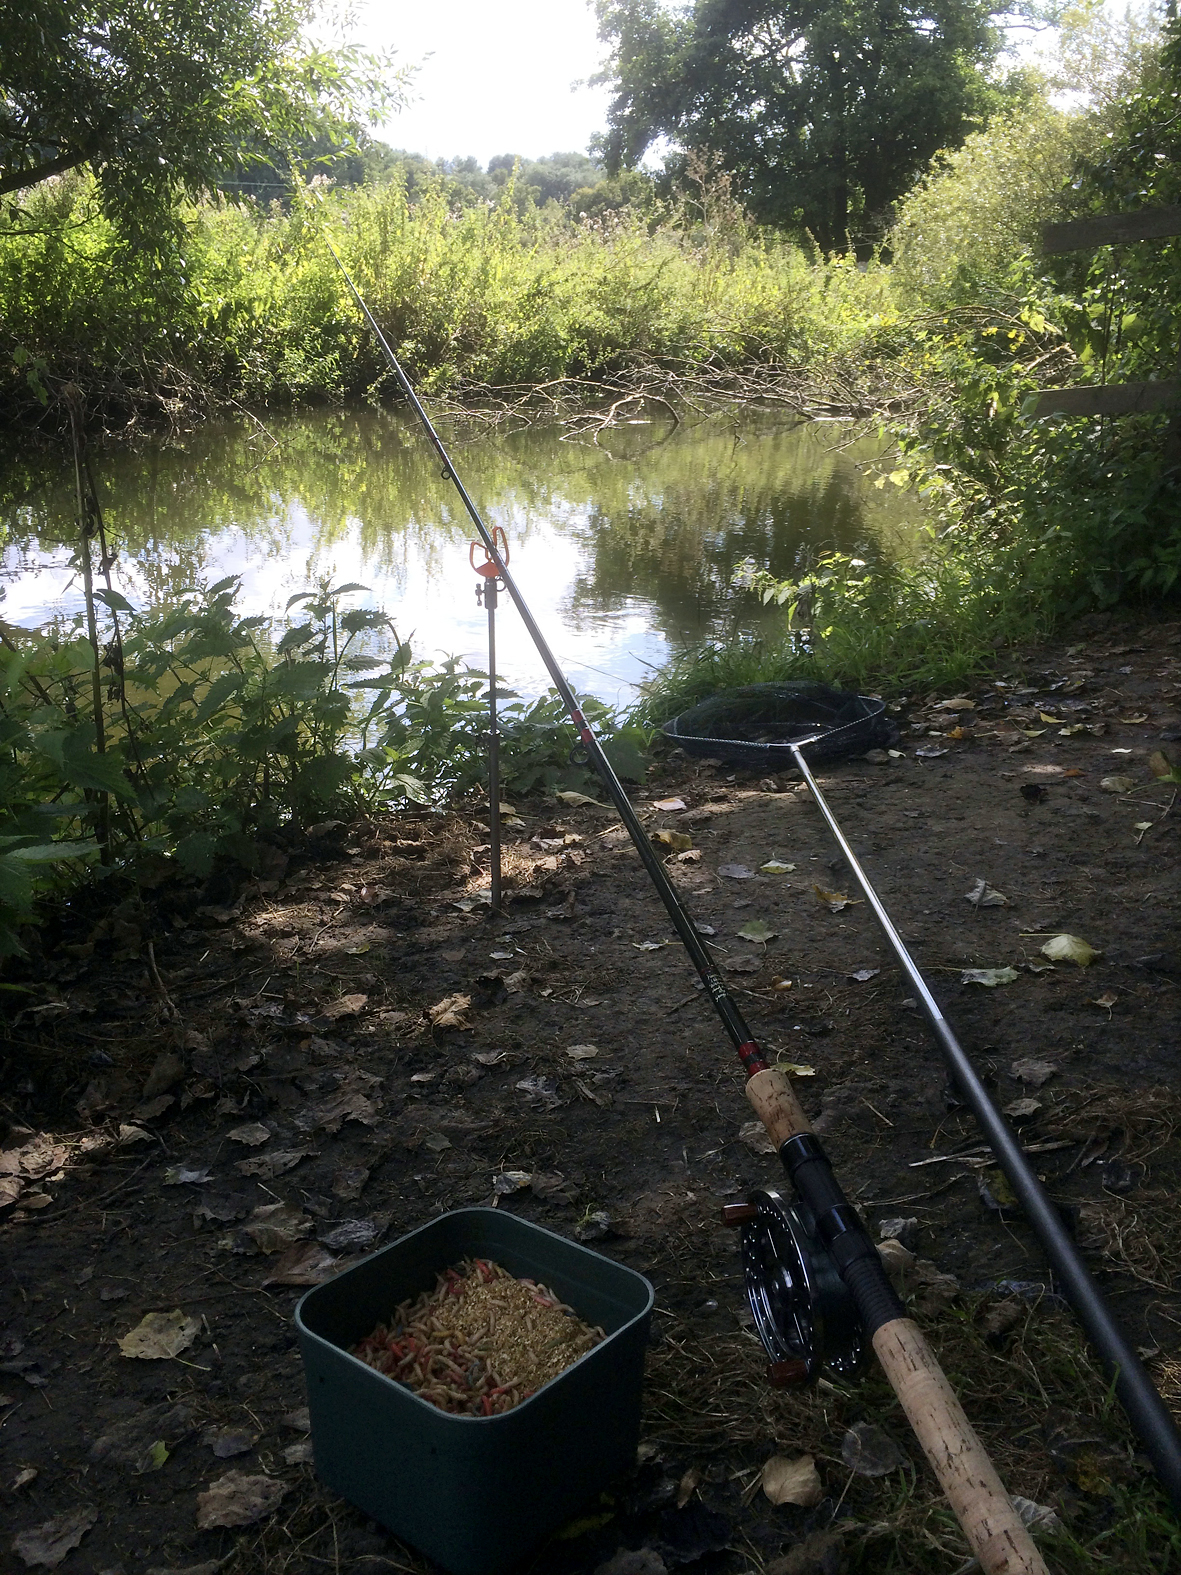 Minimal tackle, but you don't need much to tempt a few fish and enjoy a good session